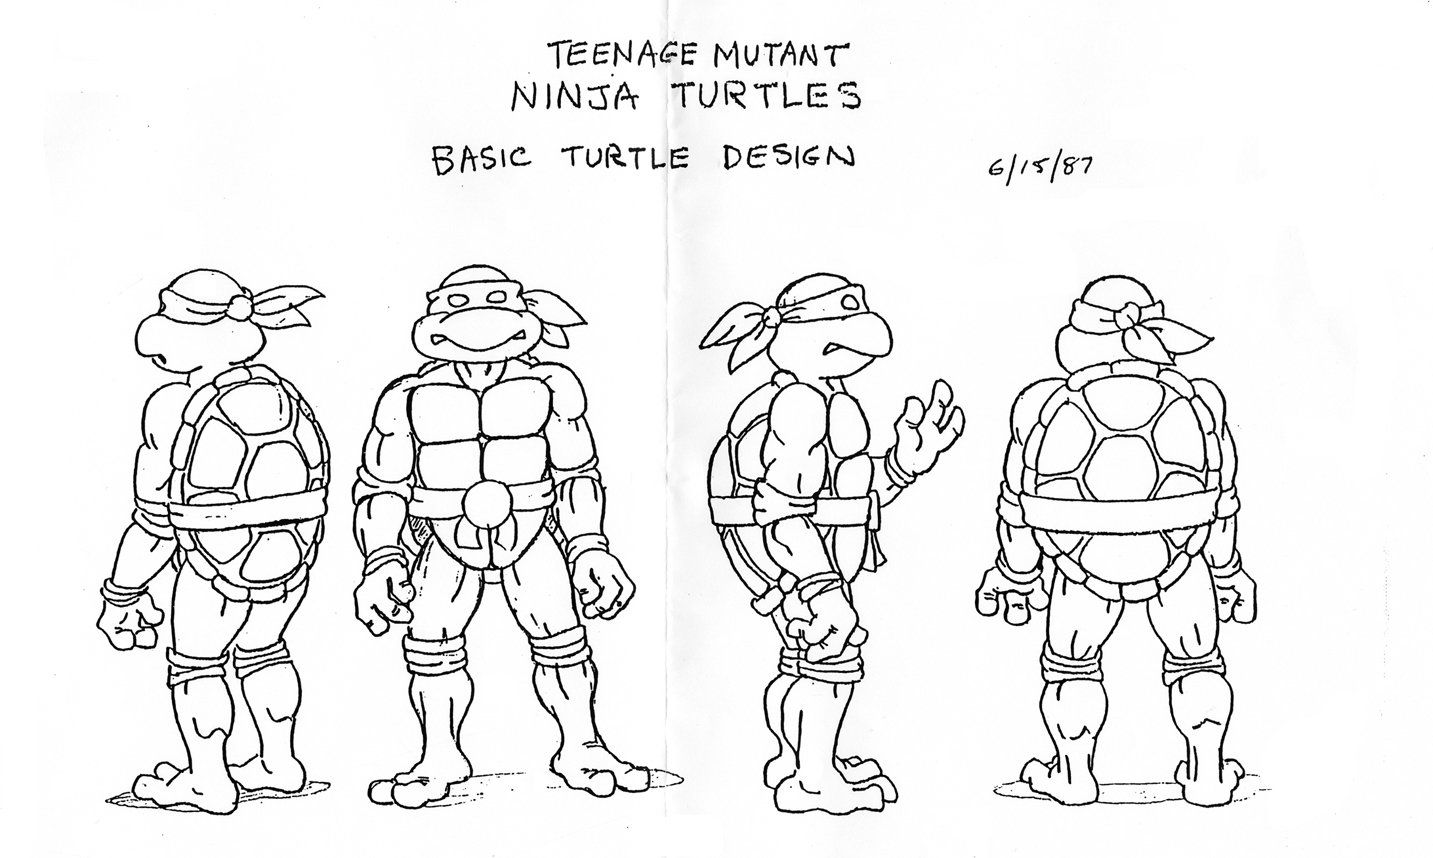 Original Turtles The Best Kind Image Tmnt Heroes In